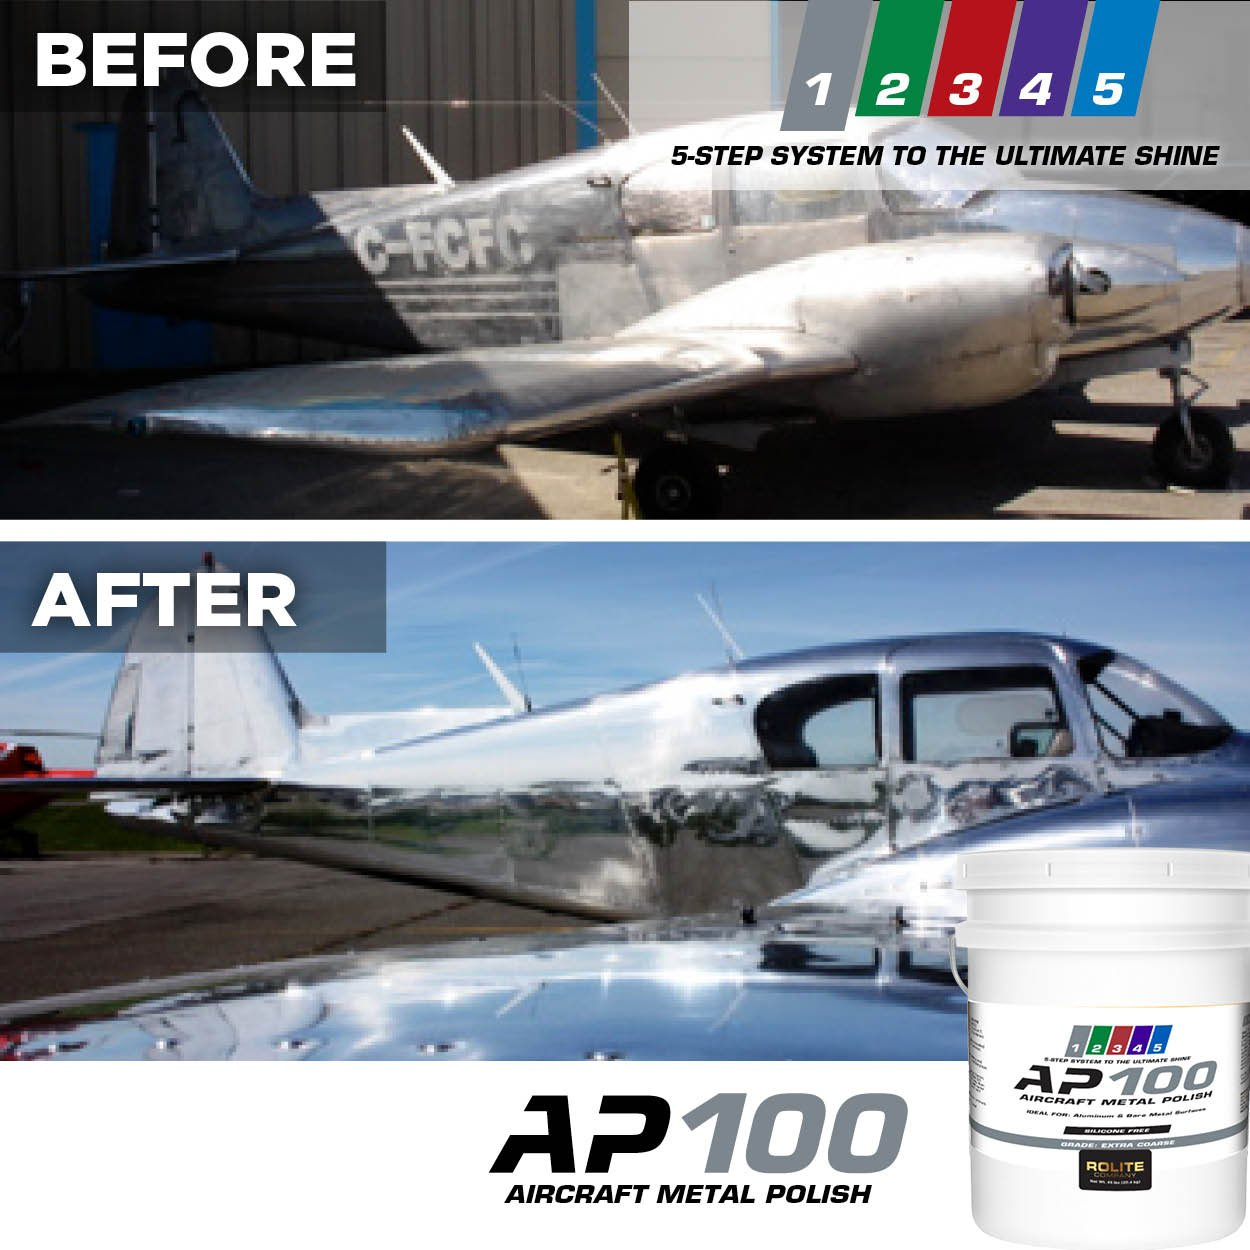 AP100 Aircraft Metal Polish (1lb) - Extra Coarse - for Airplane Aluminum & Bare Metal Surfaces, Brightwork, Meets Boeing & Airbus Requirements by Rolite